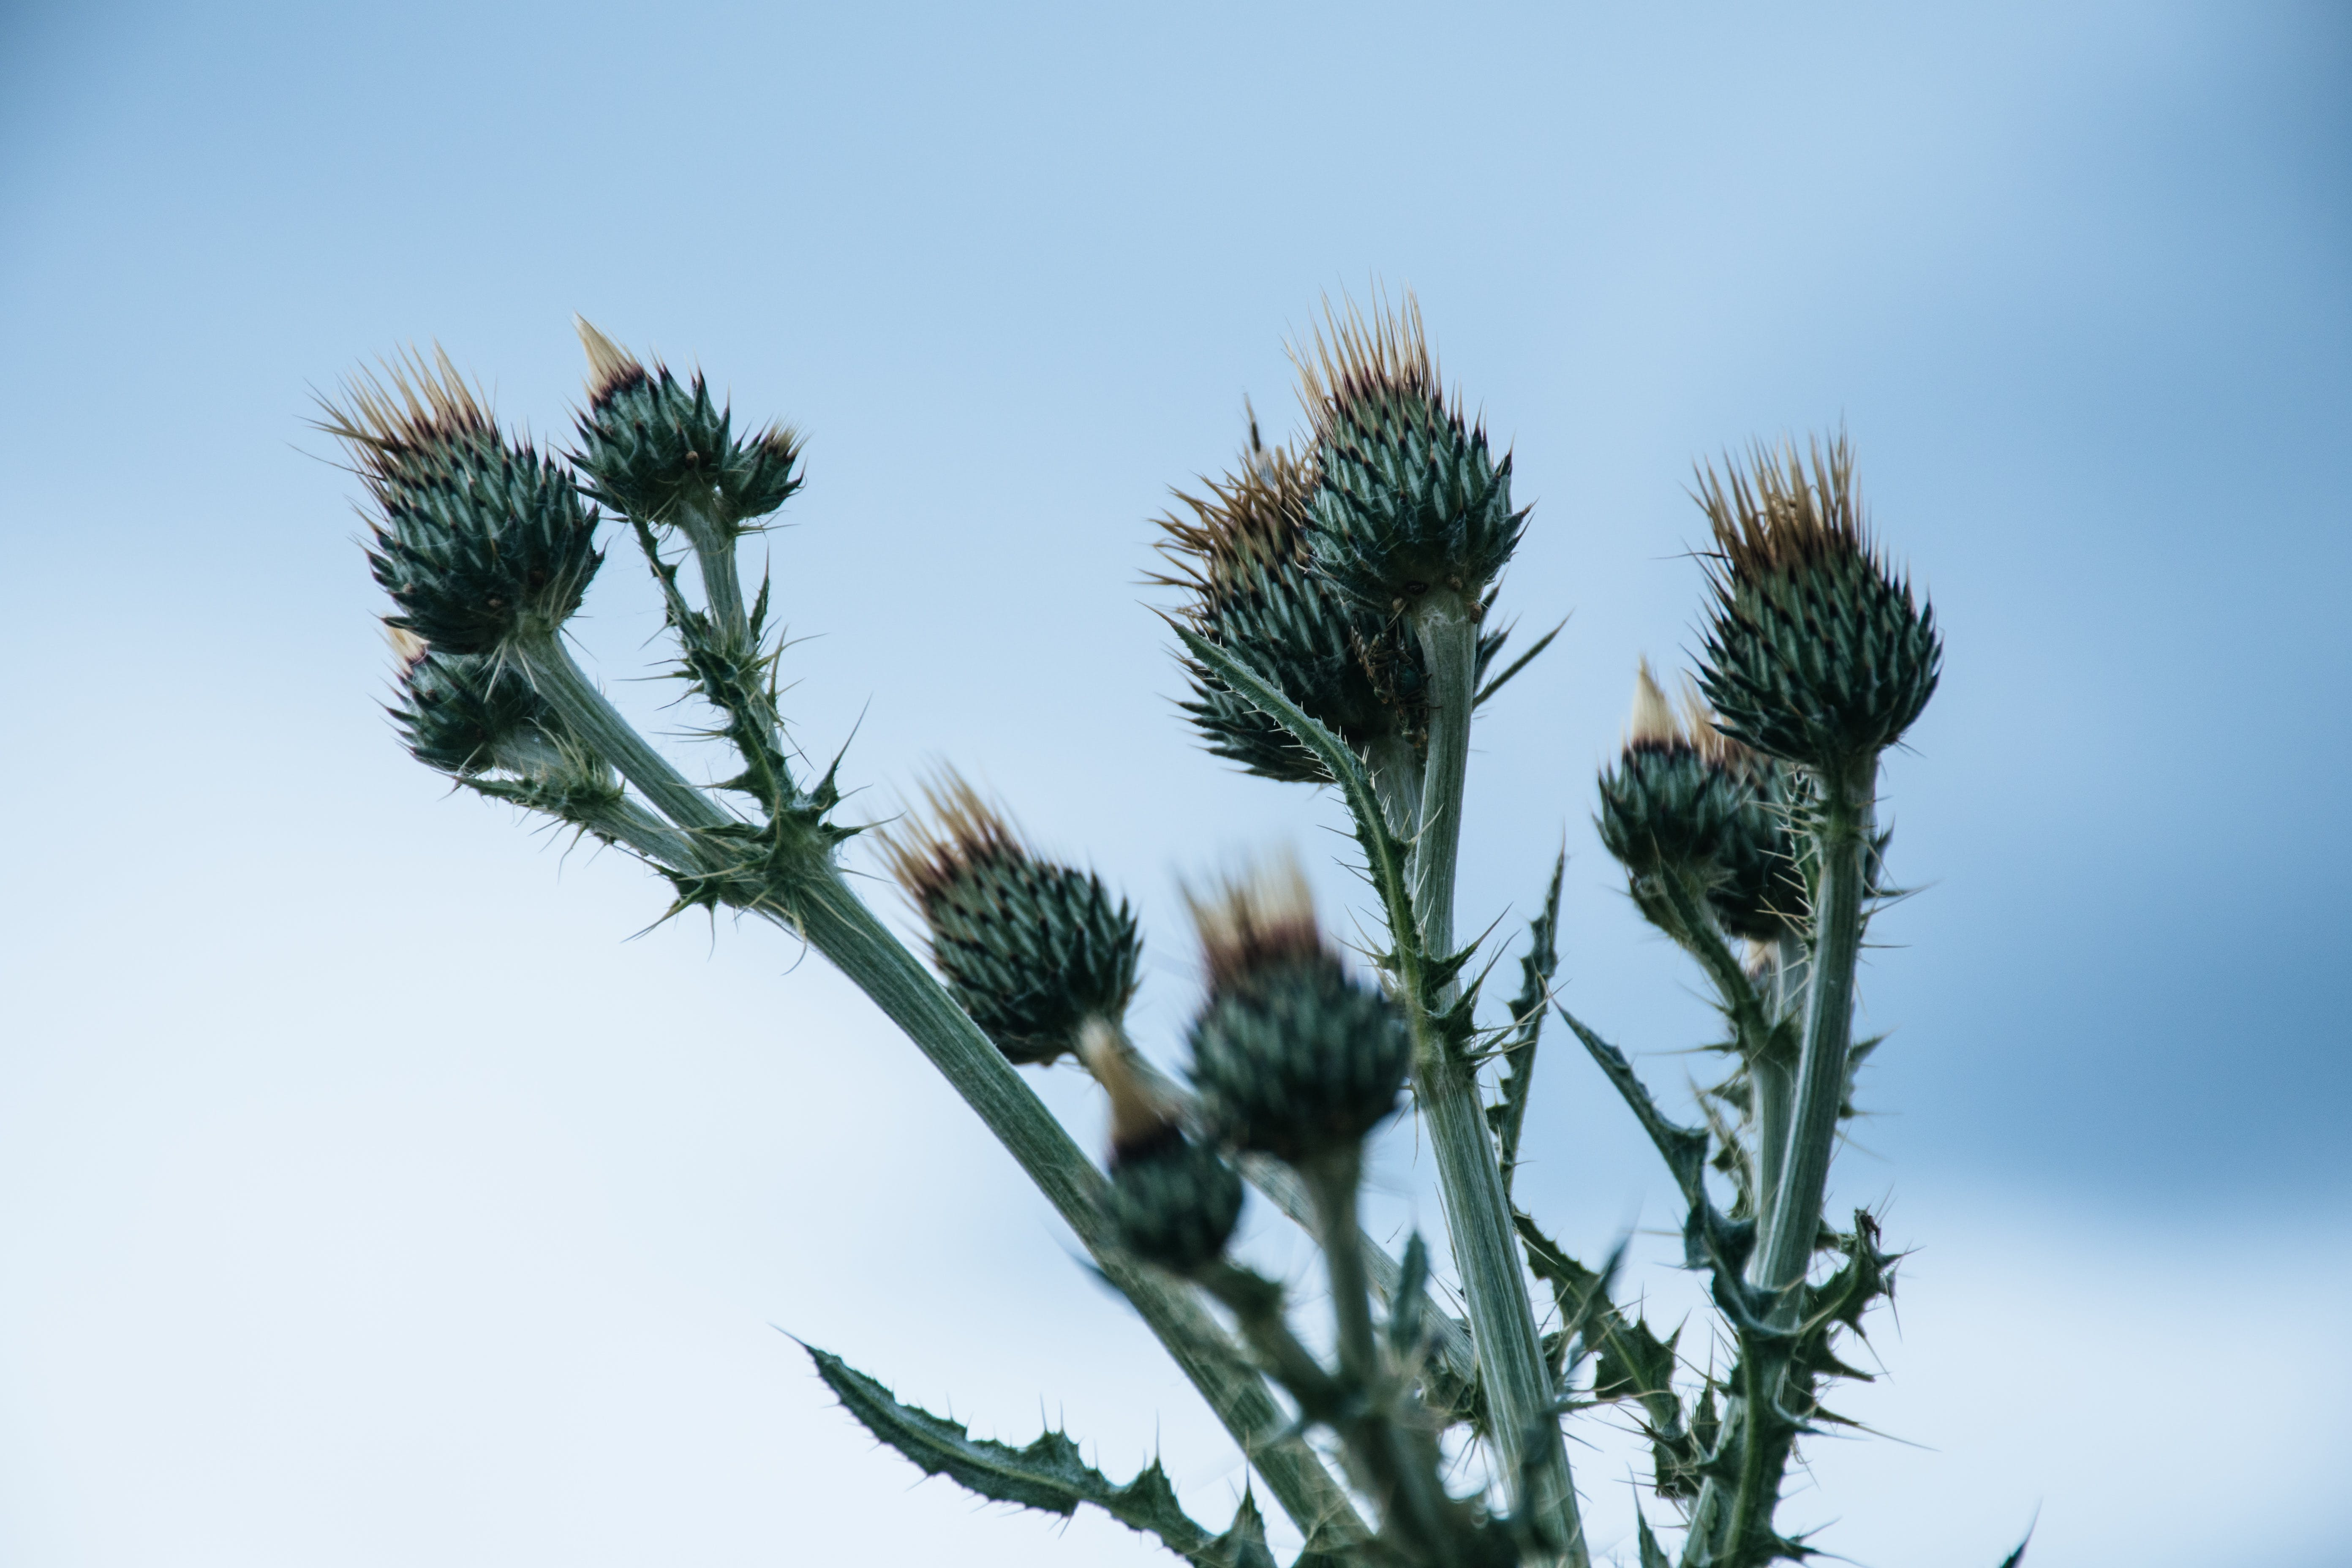 Green Thistle Flower Buds Pin Bloom at Daytime